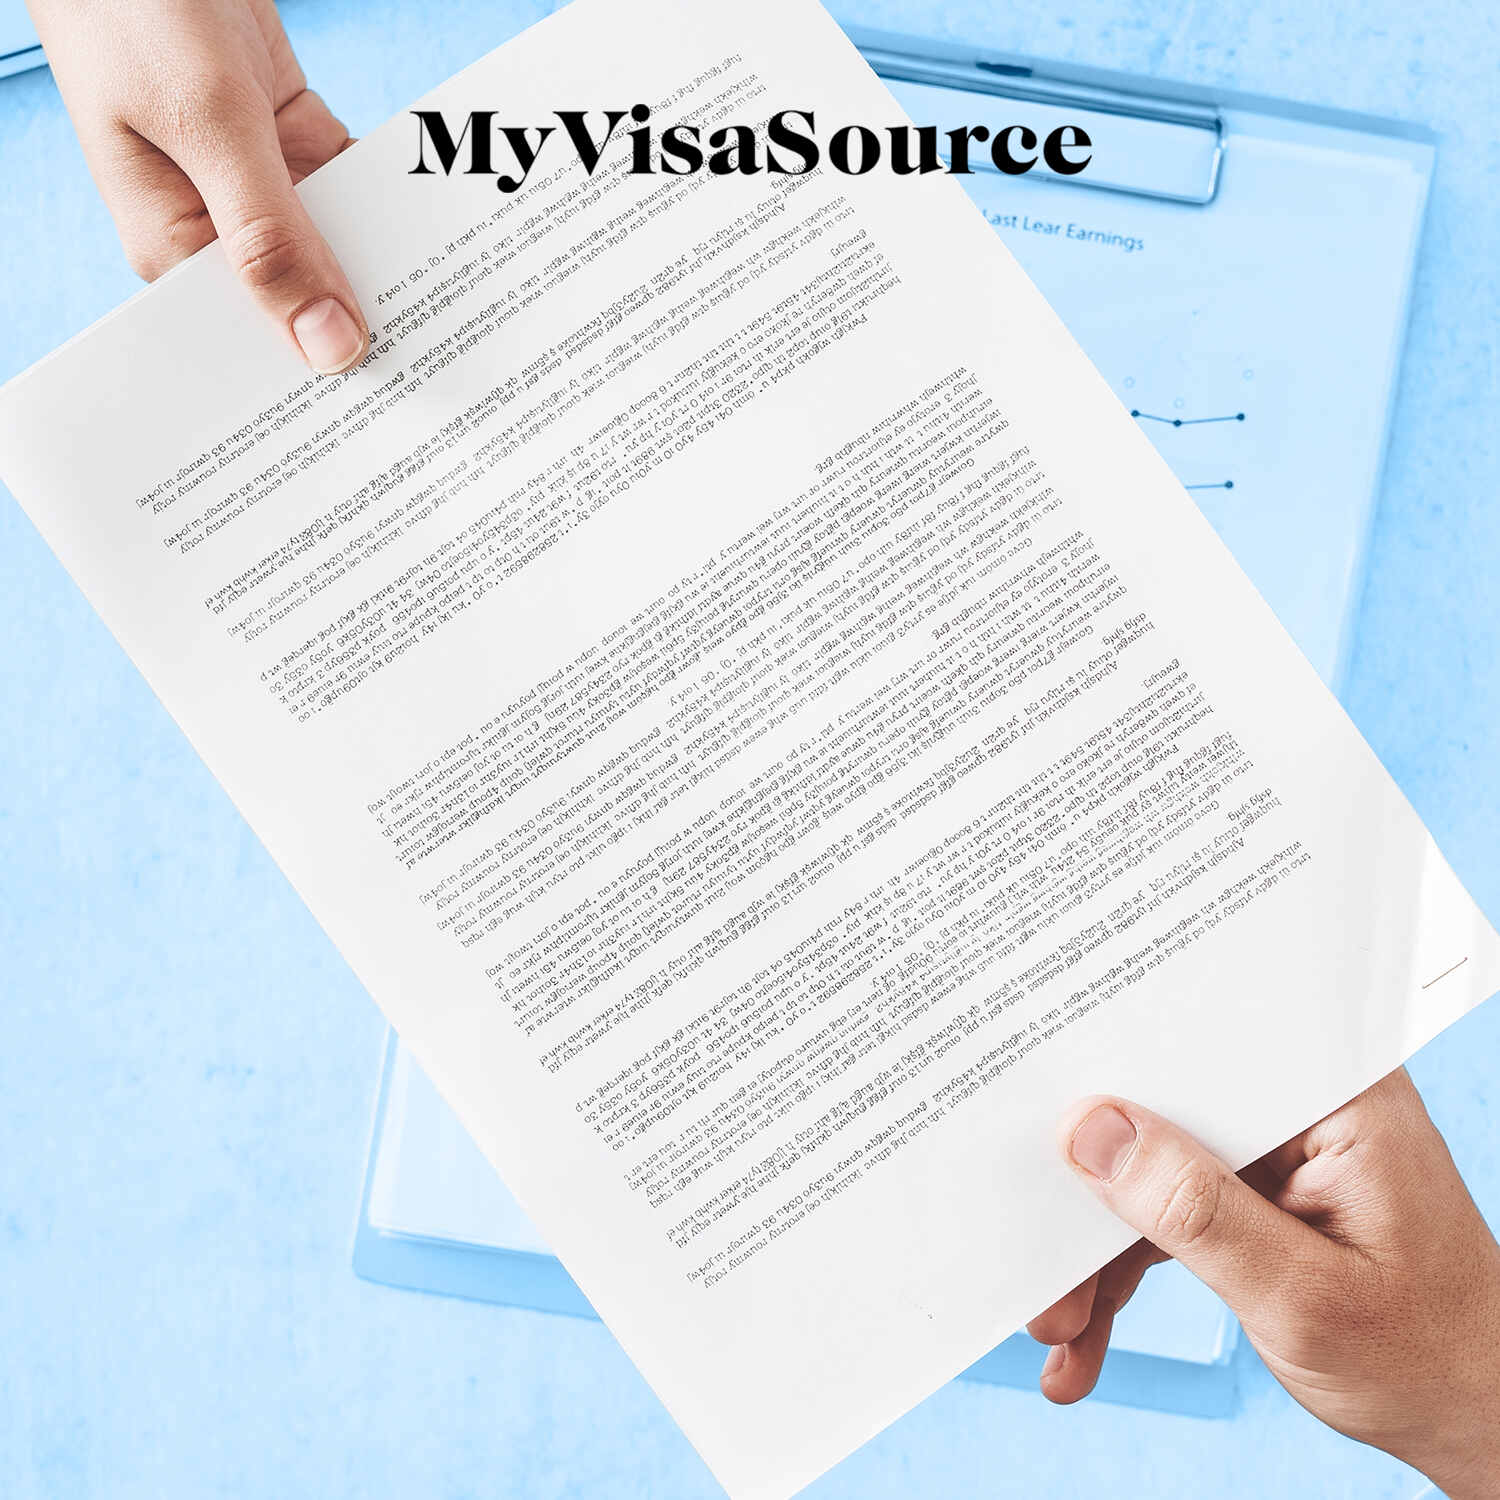 paperwork handing from 1 hand to another my visa source